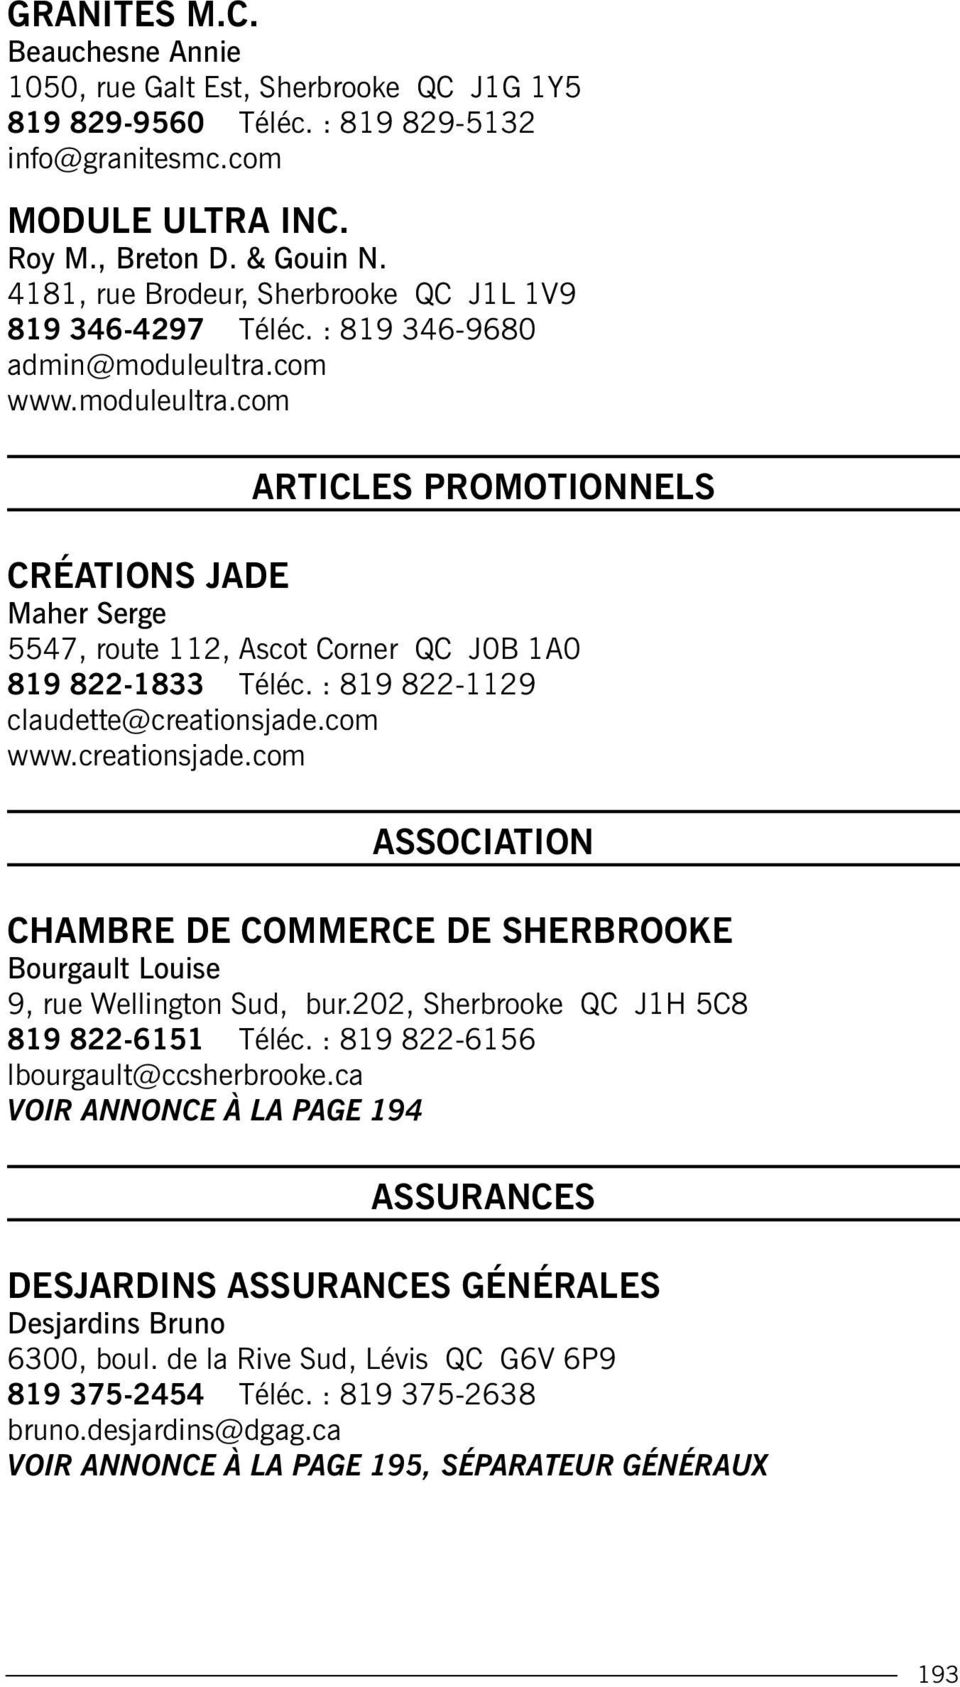 Danielle par index graphisme r daction r vision pdf for Chambre commerce sherbrooke